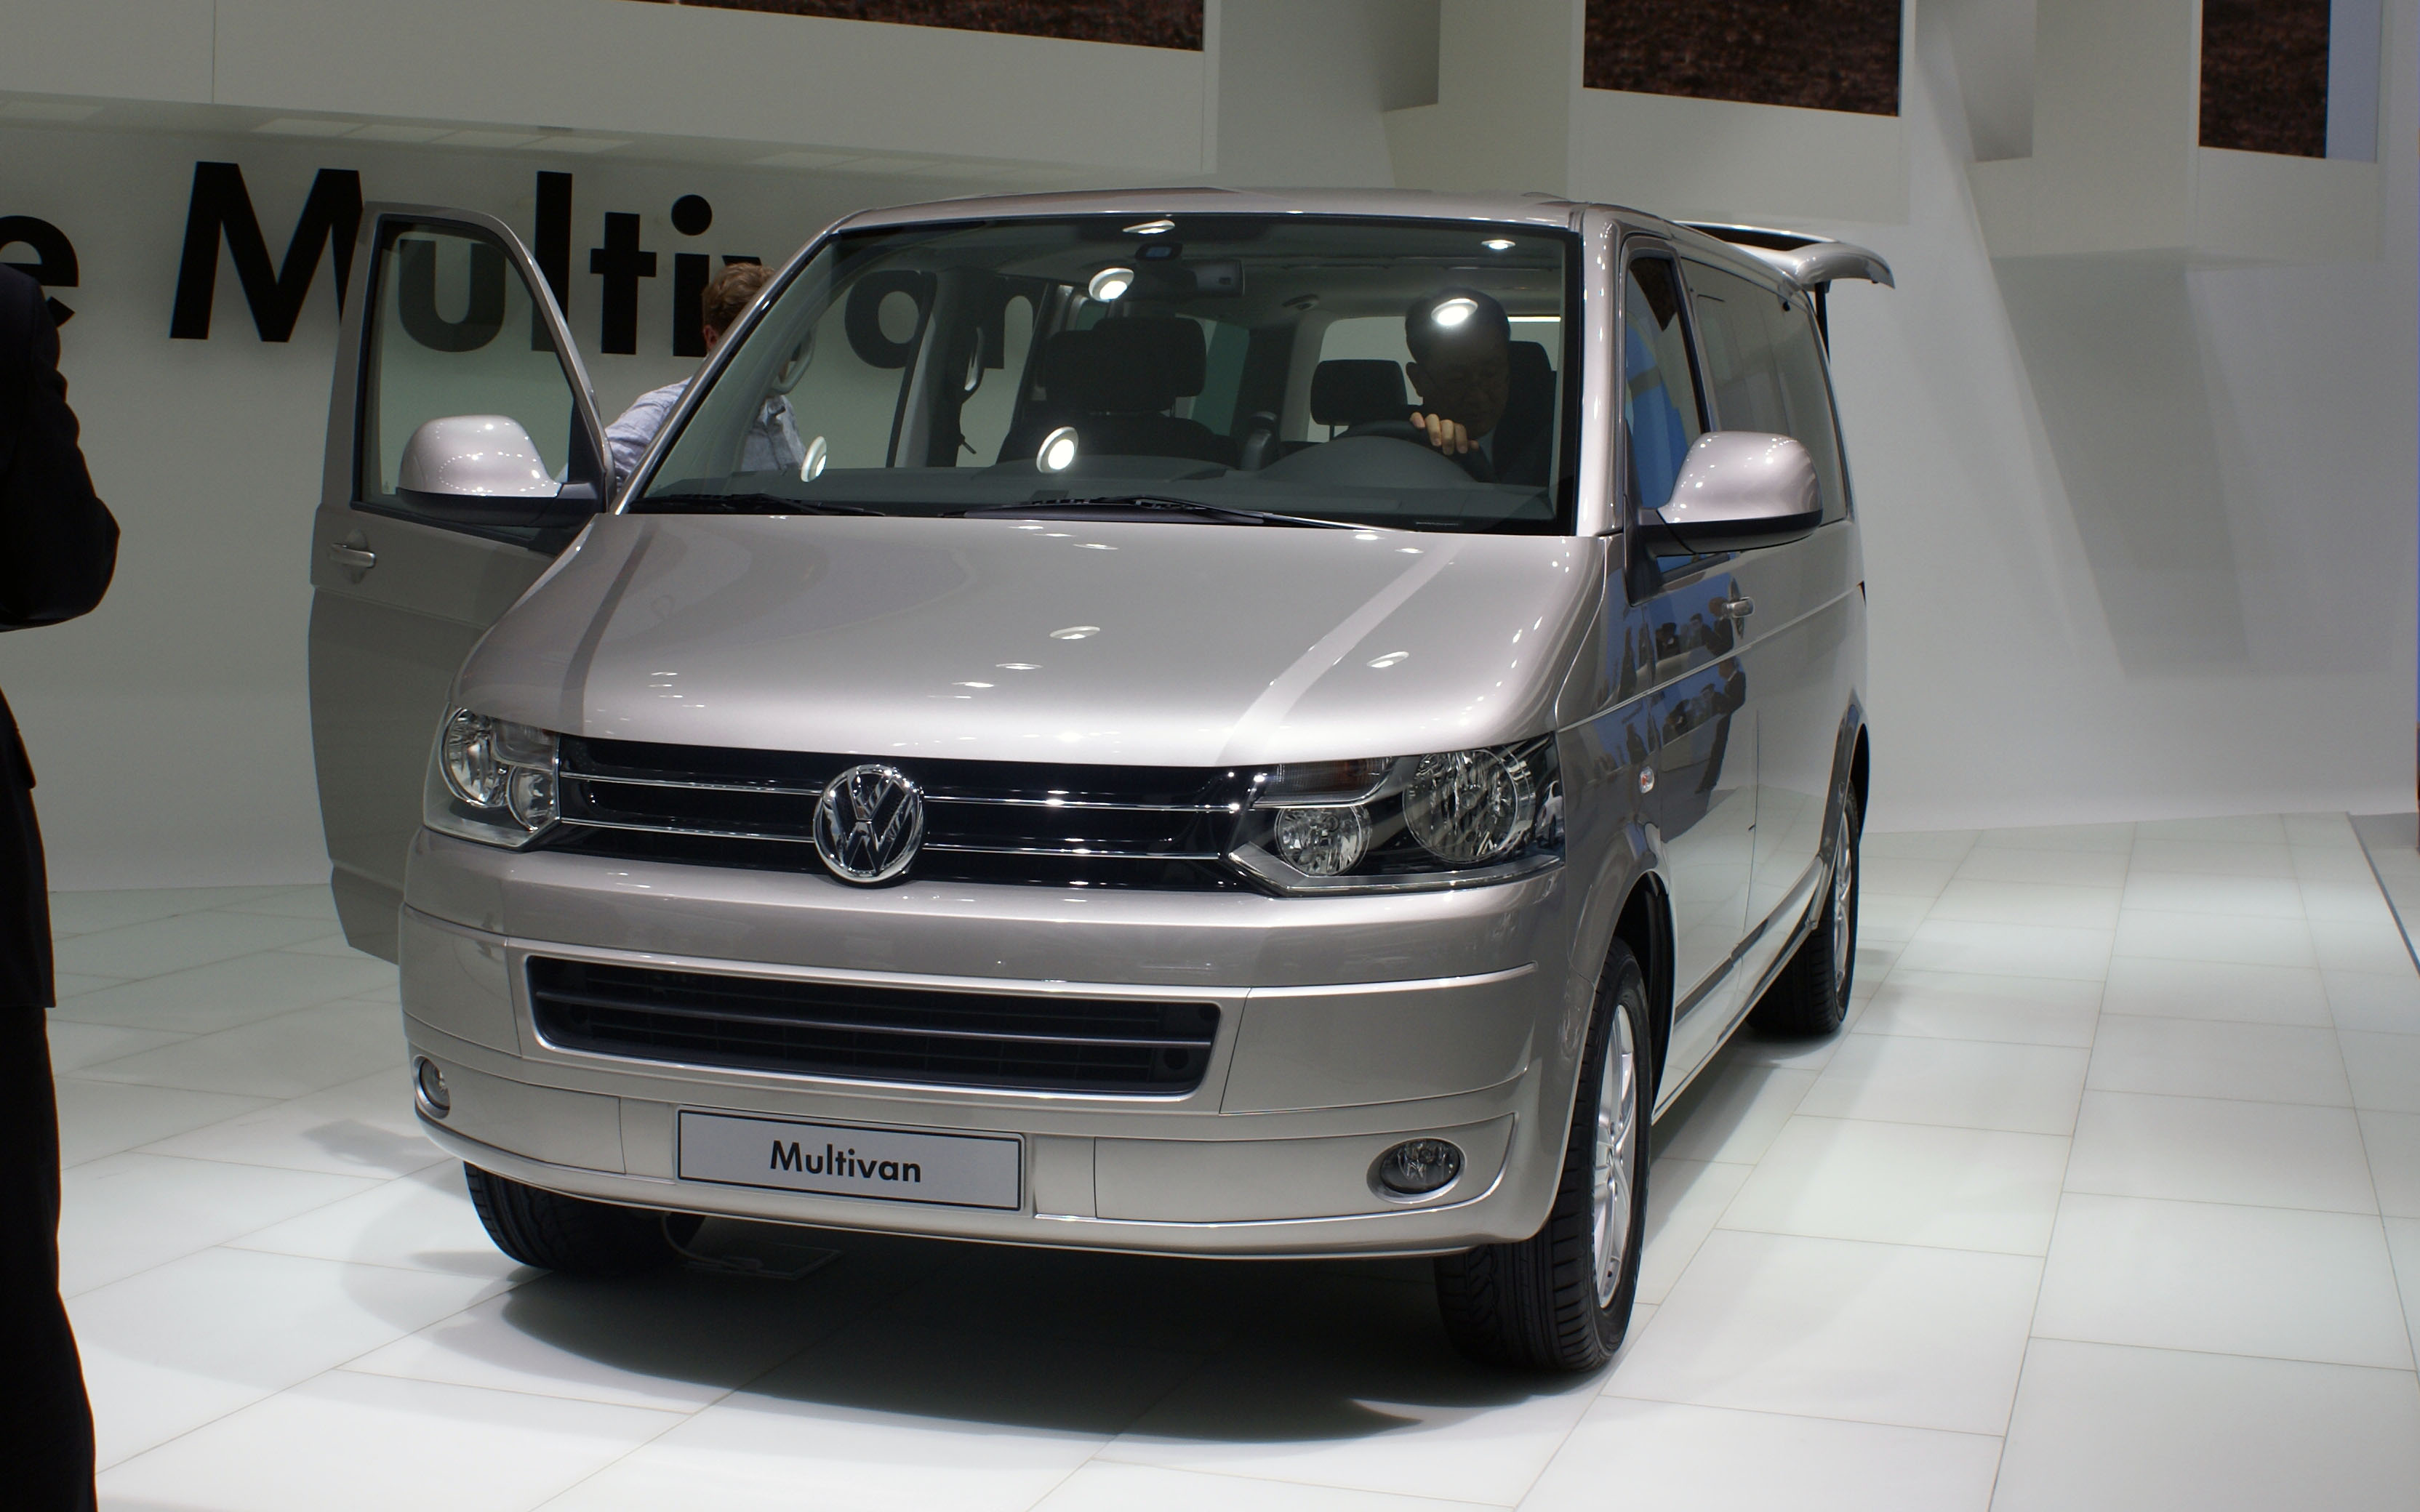 file grey vw multivan t5 facelift fl iaa 2009 jpg wikimedia commons. Black Bedroom Furniture Sets. Home Design Ideas